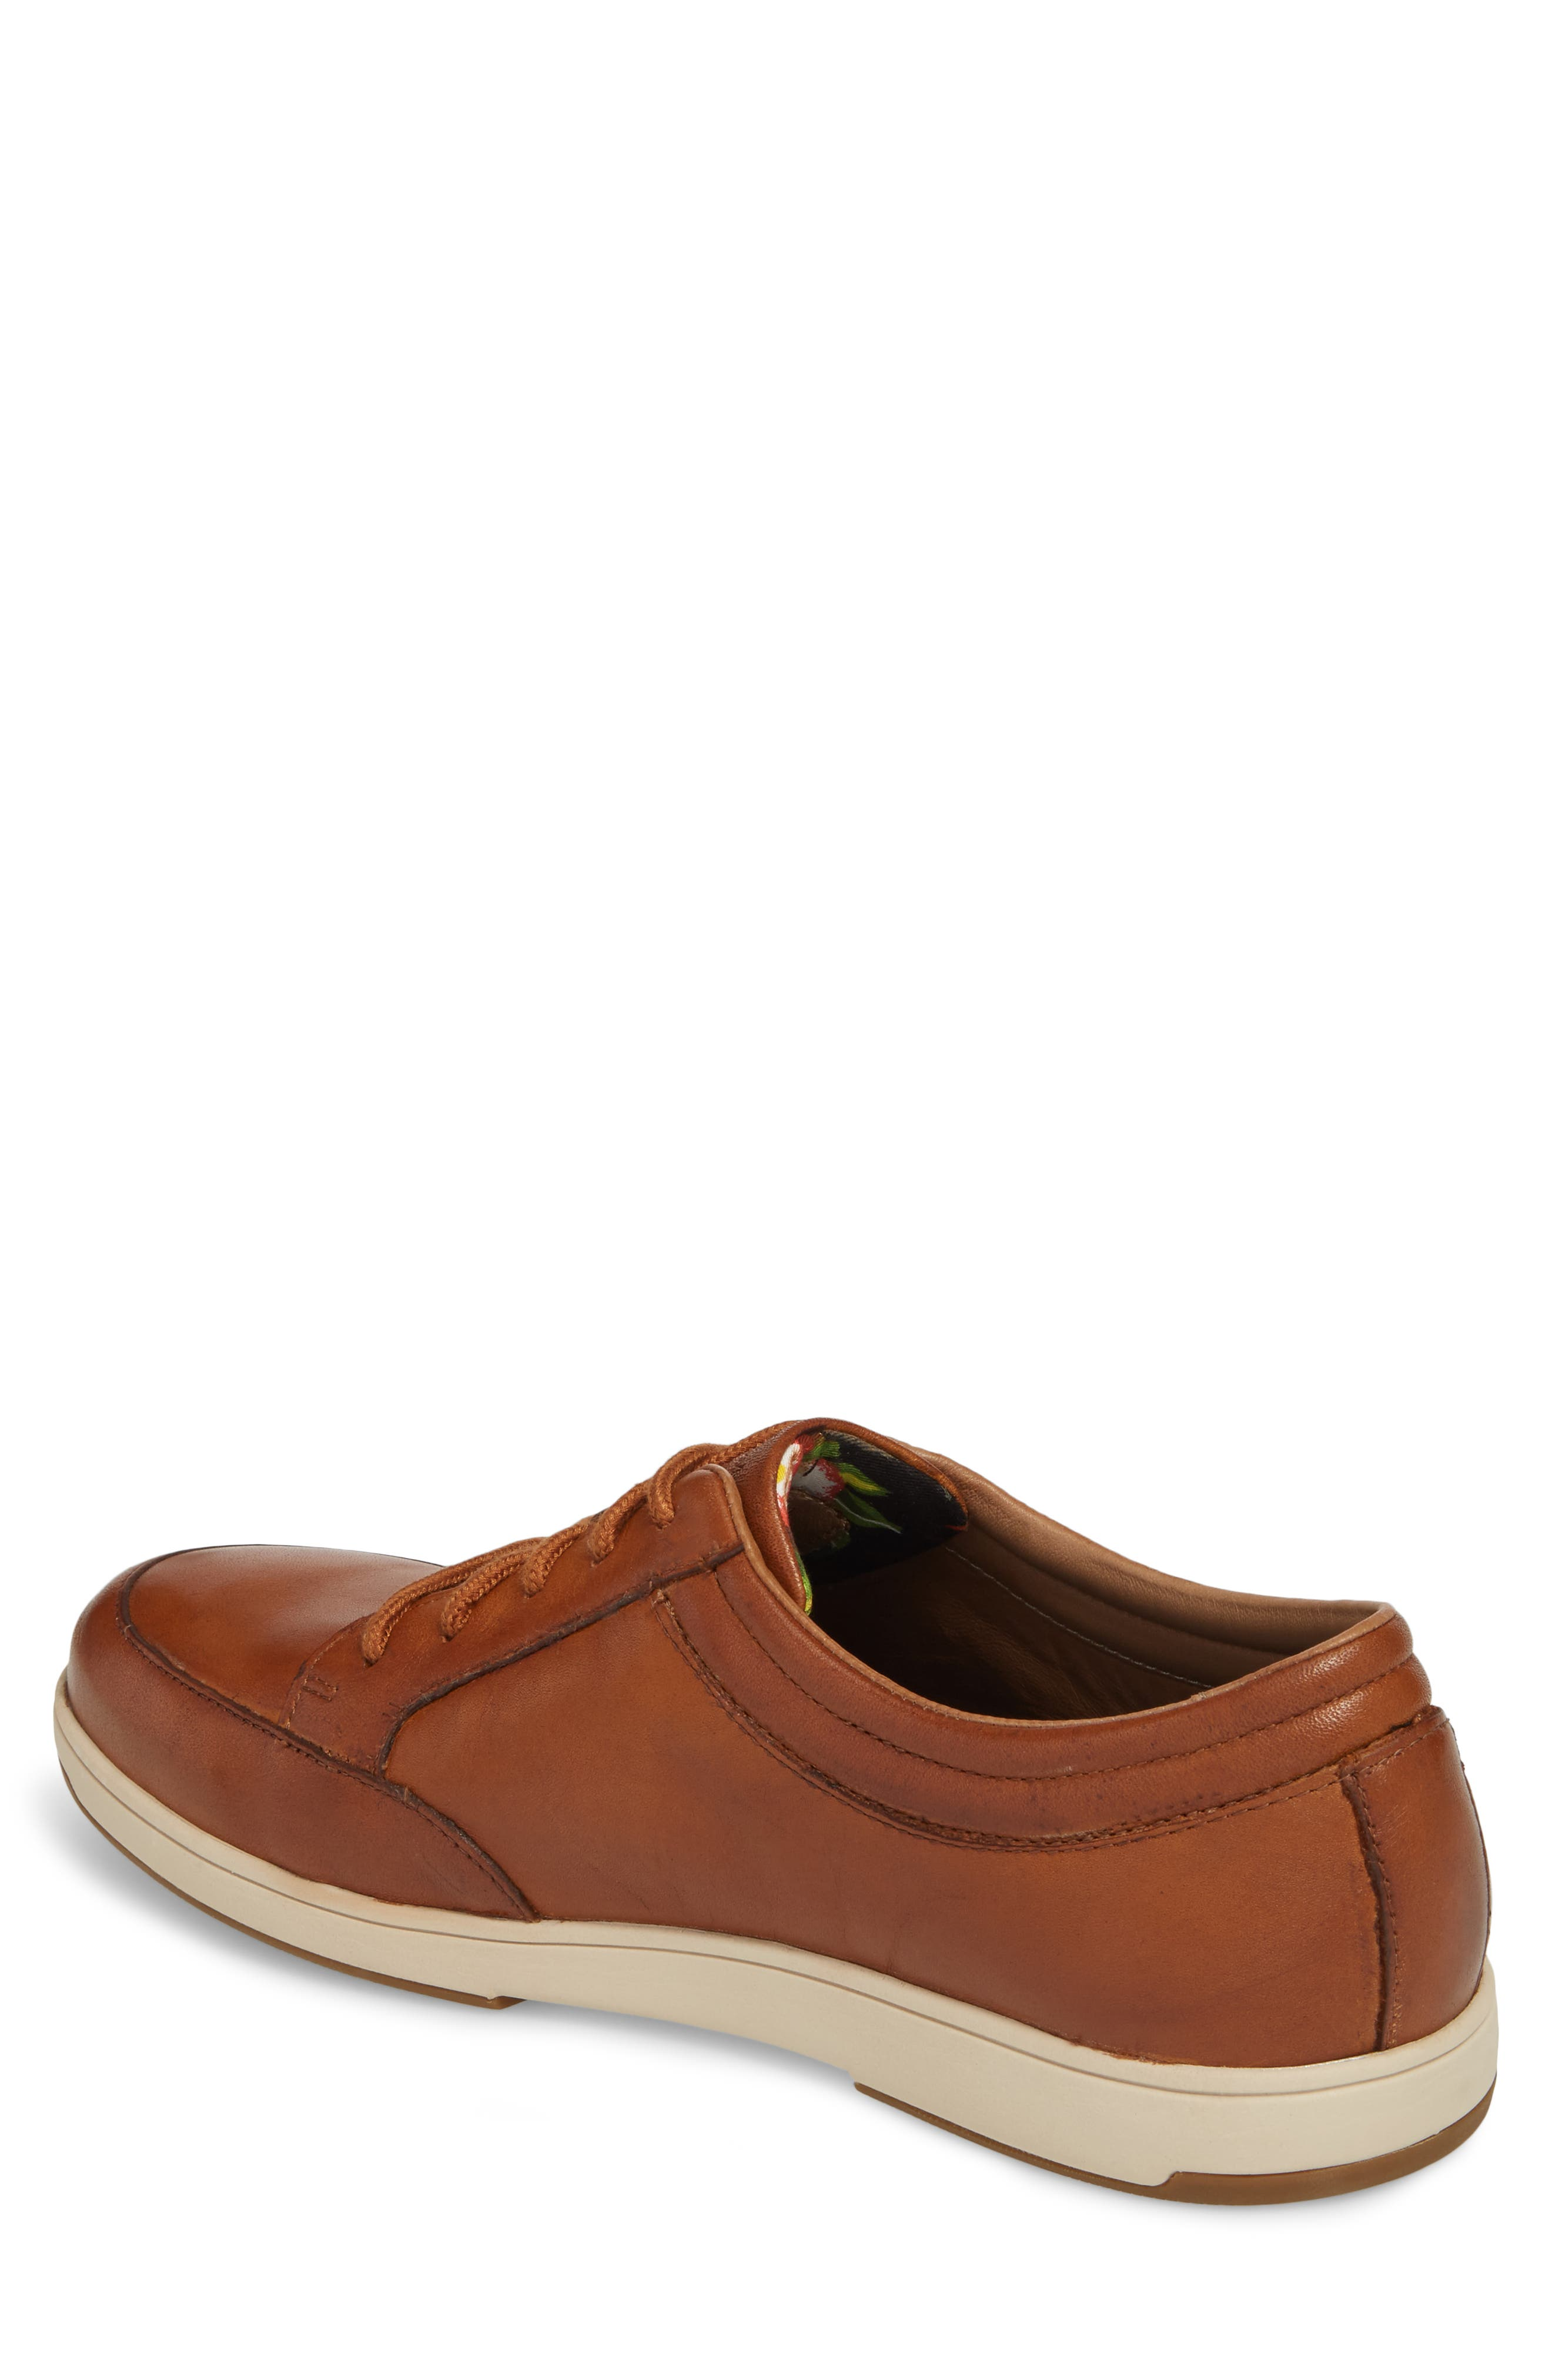 Caicos Authentic Low Top Sneaker,                             Alternate thumbnail 2, color,                             TAN LEATHER